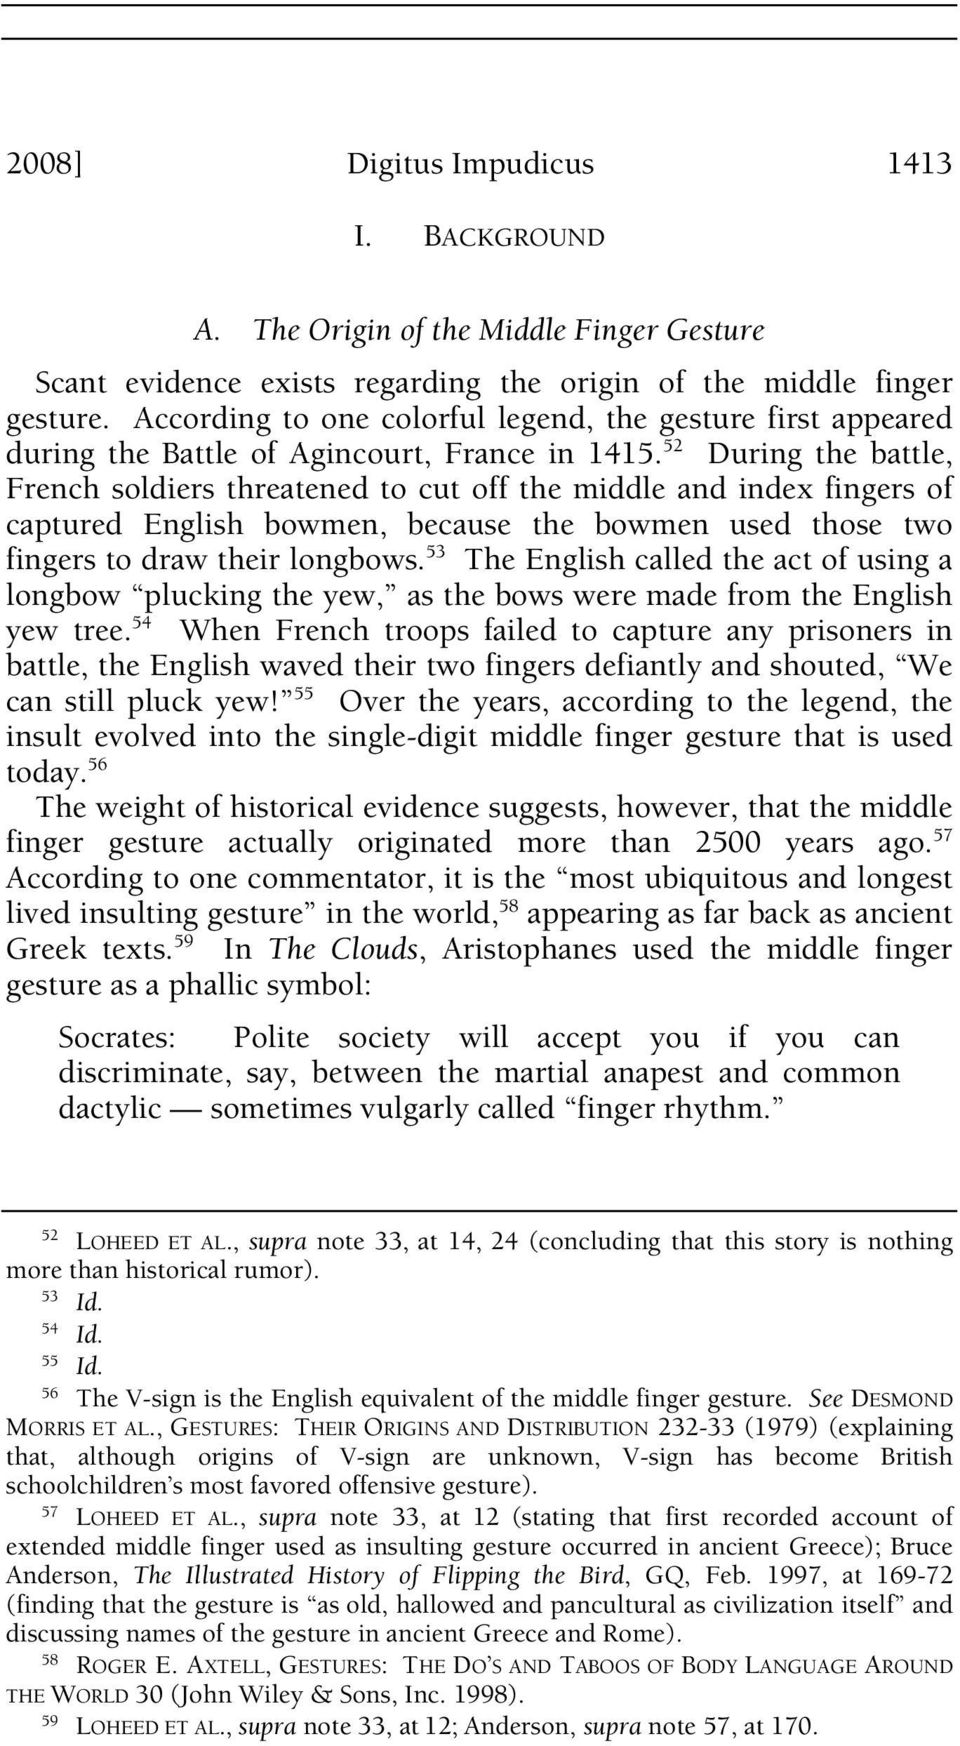 52 During the battle, French soldiers threatened to cut off the middle and index fingers of captured English bowmen, because the bowmen used those two fingers to draw their longbows.